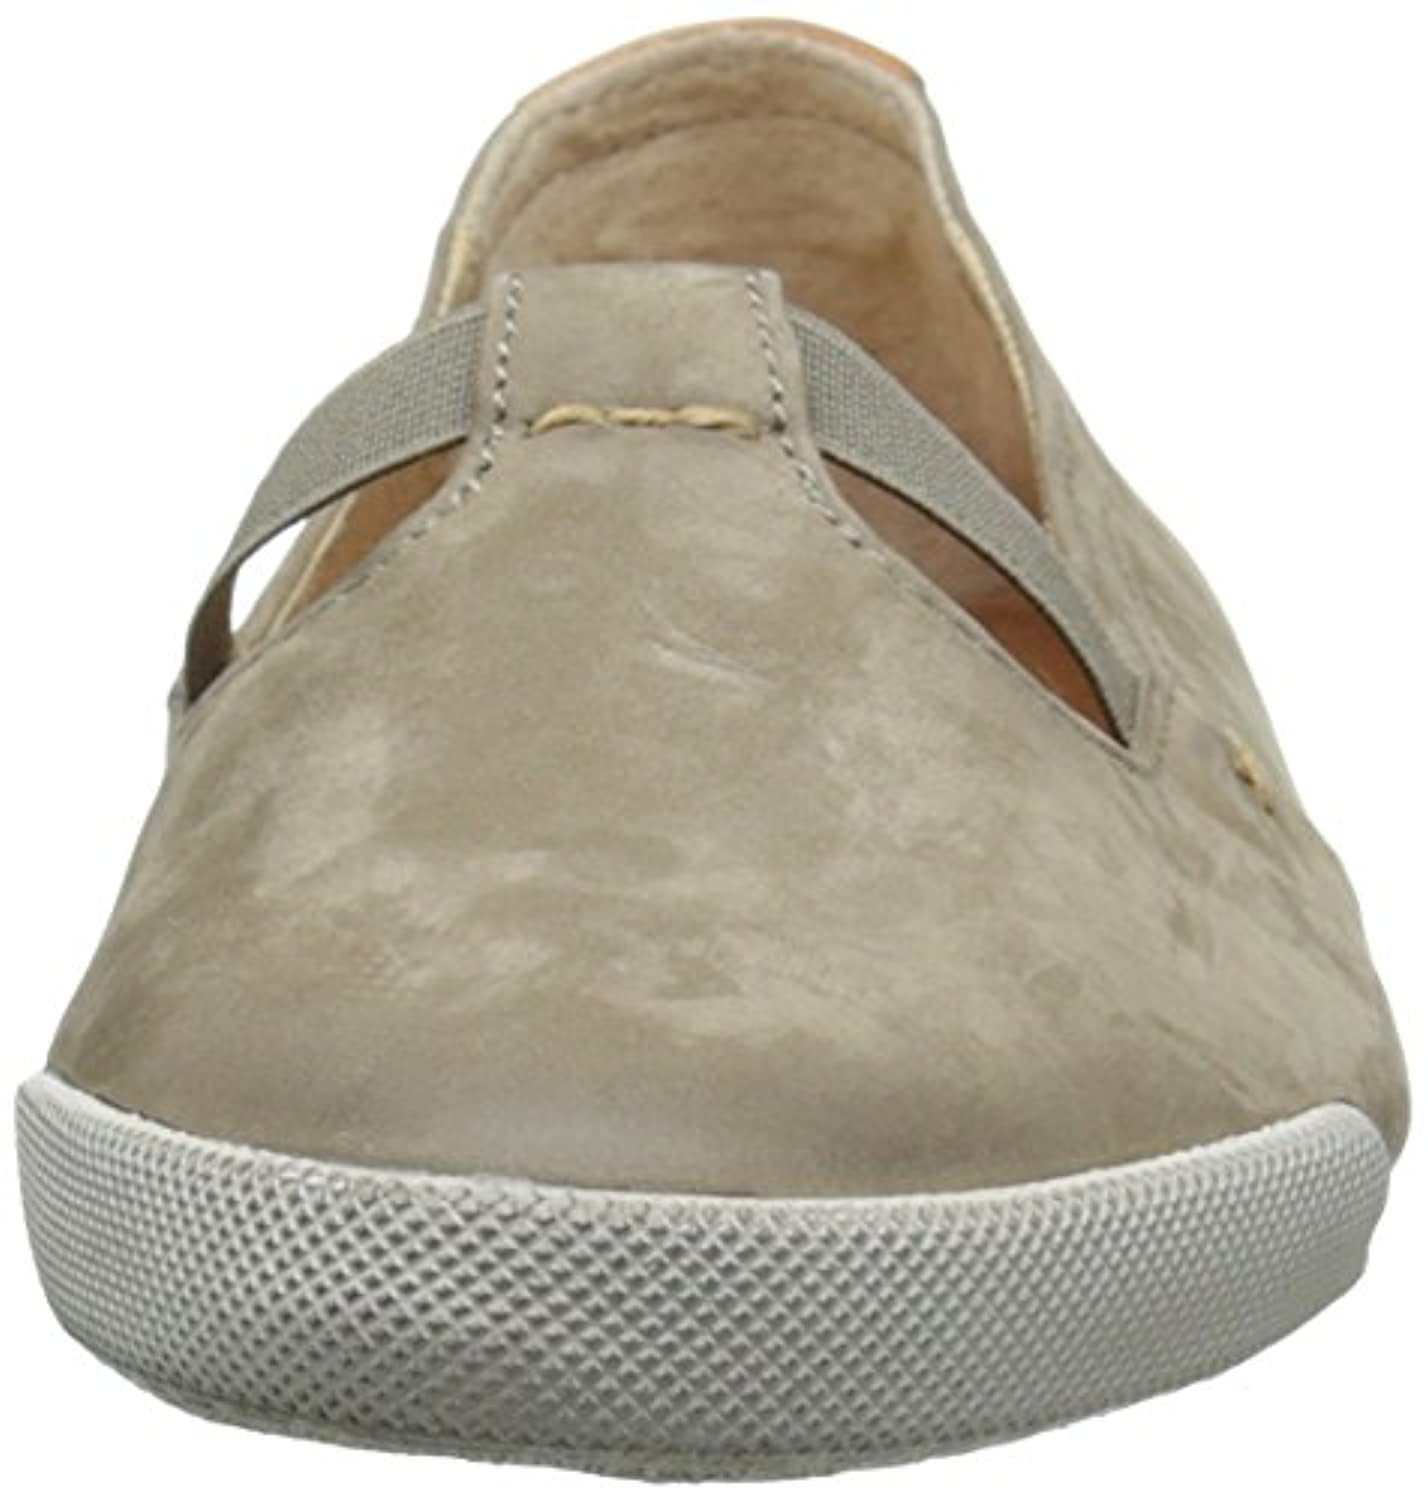 FRYE Women's Melanie T Strap Bufnu Fashion Sneaker, Grey, 7.5 M US